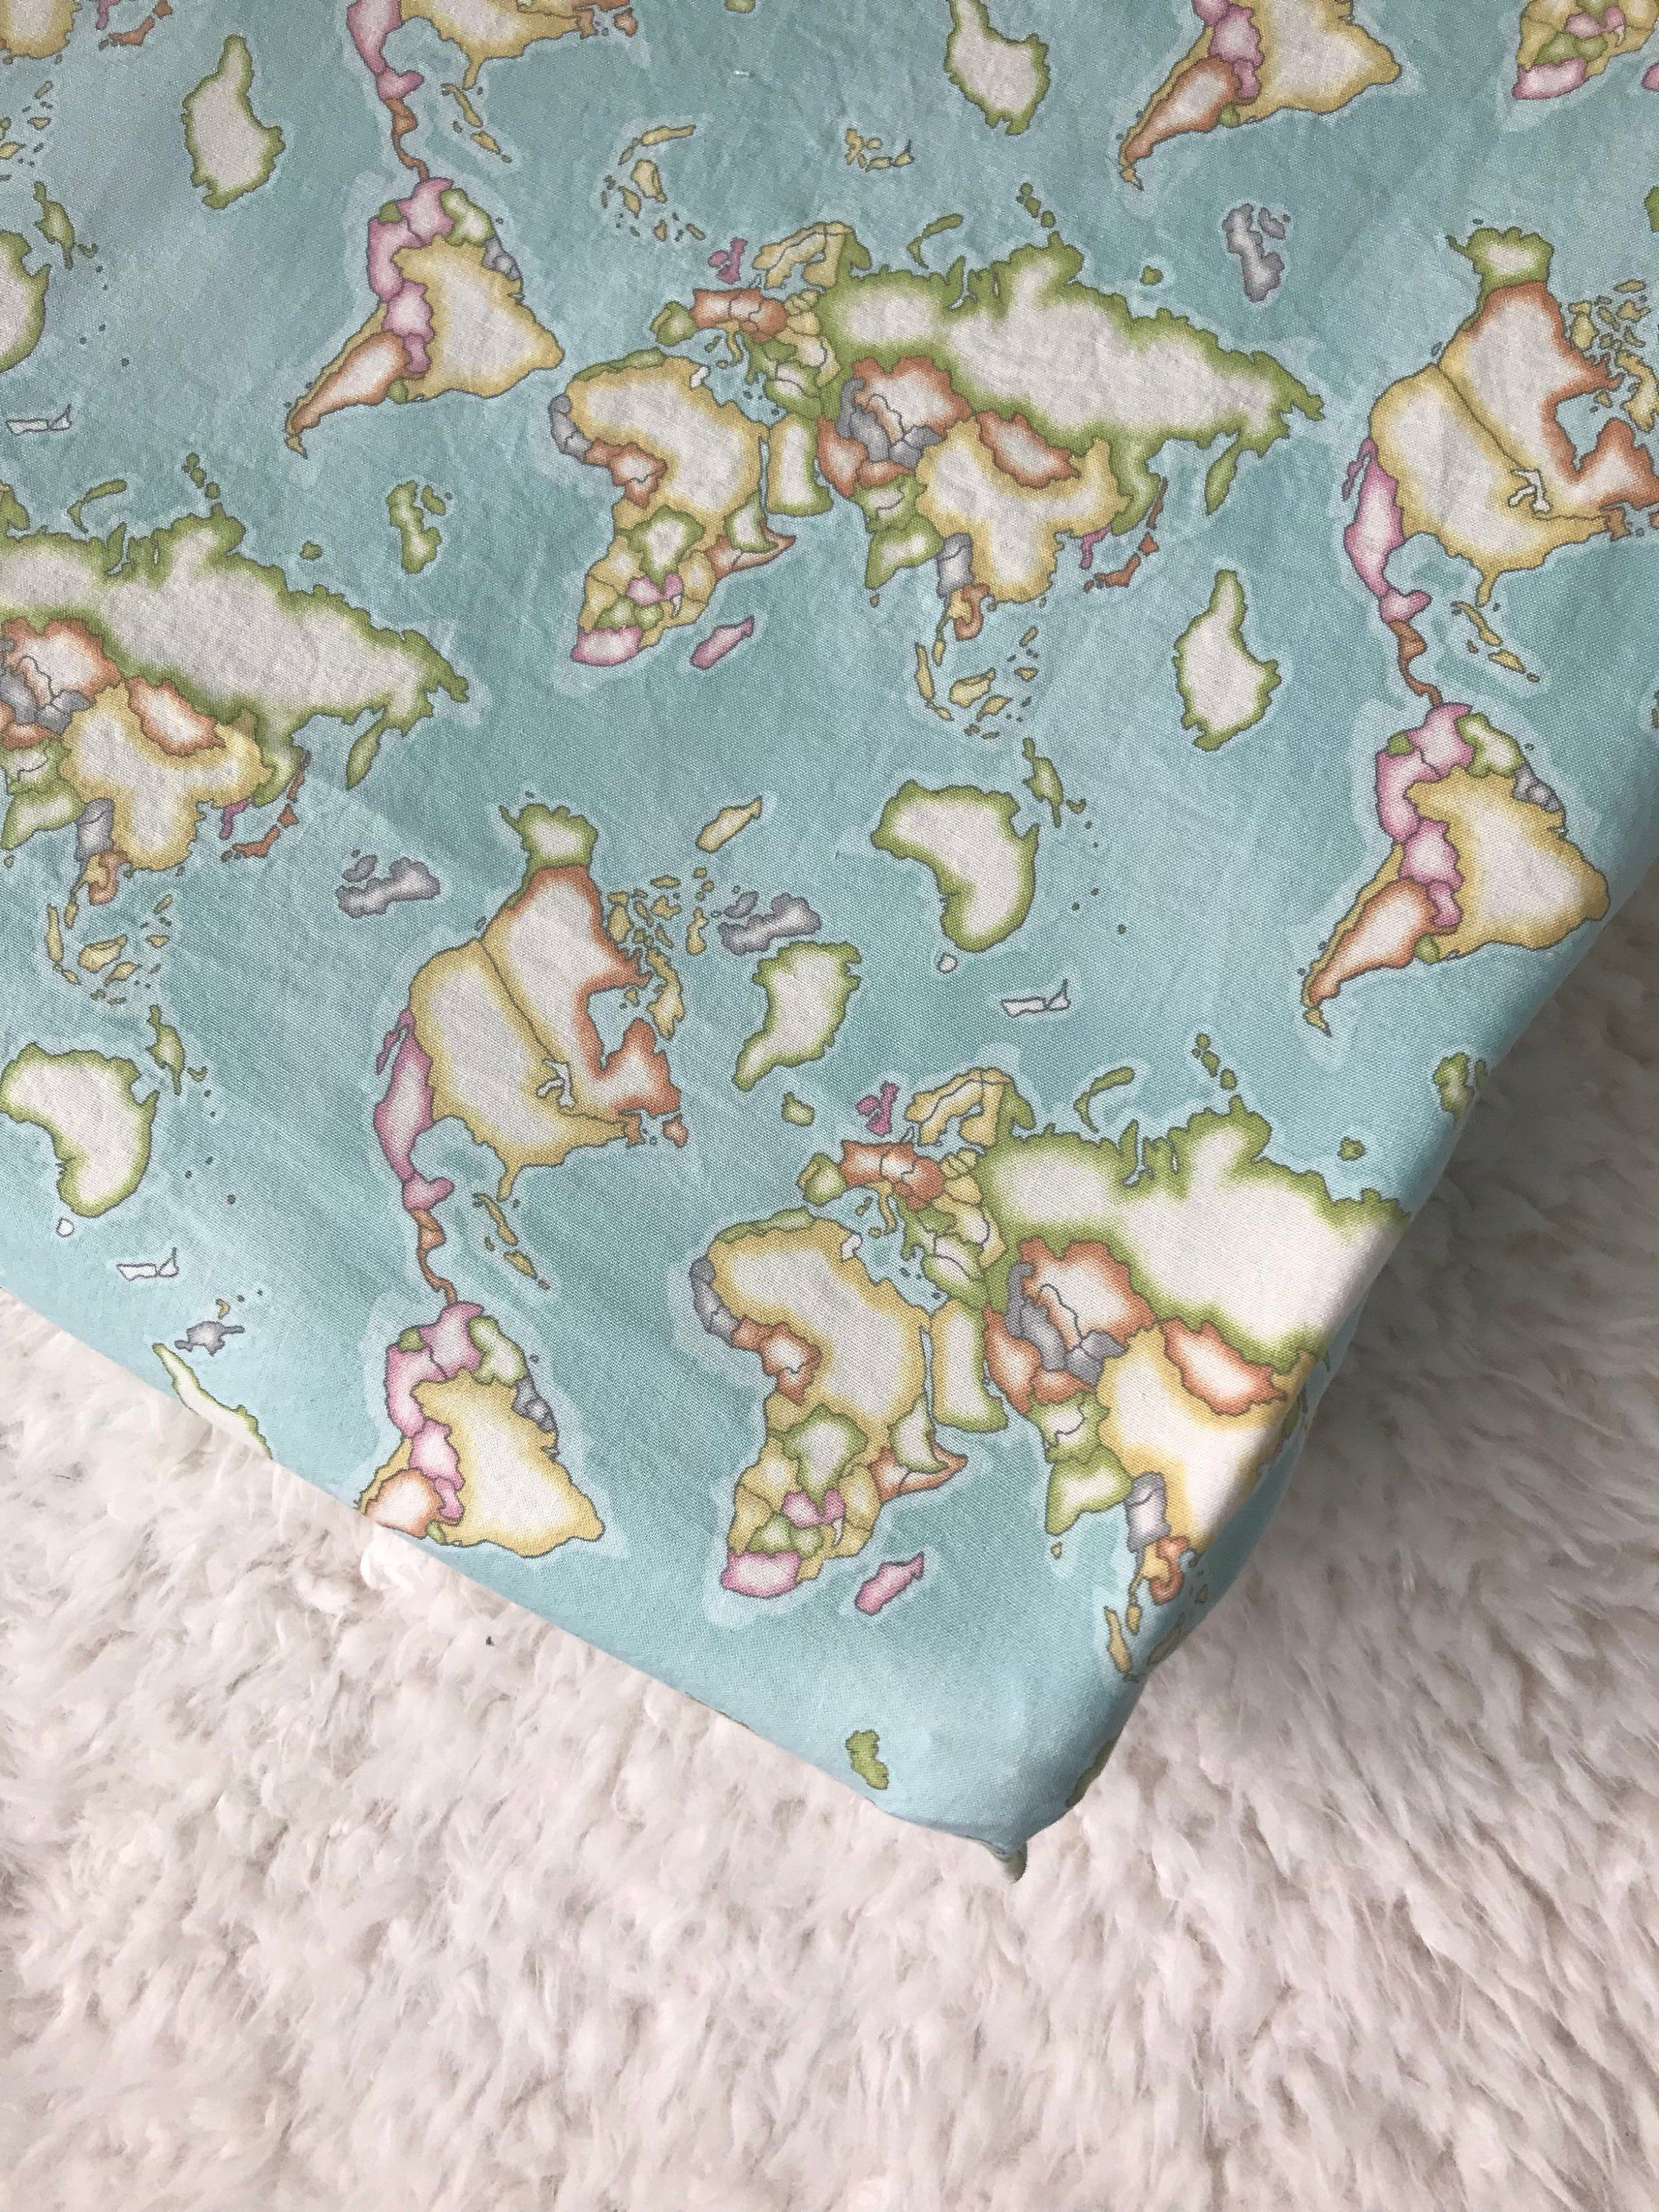 Map Baby Bedding, Map Blanket, Crib Sheet, Changing Pad ... World Map Crib Blanket on world map silhouette cameo, world map headboard, world map side table, world map coverlet, world map women's clothes, world map bedding set,